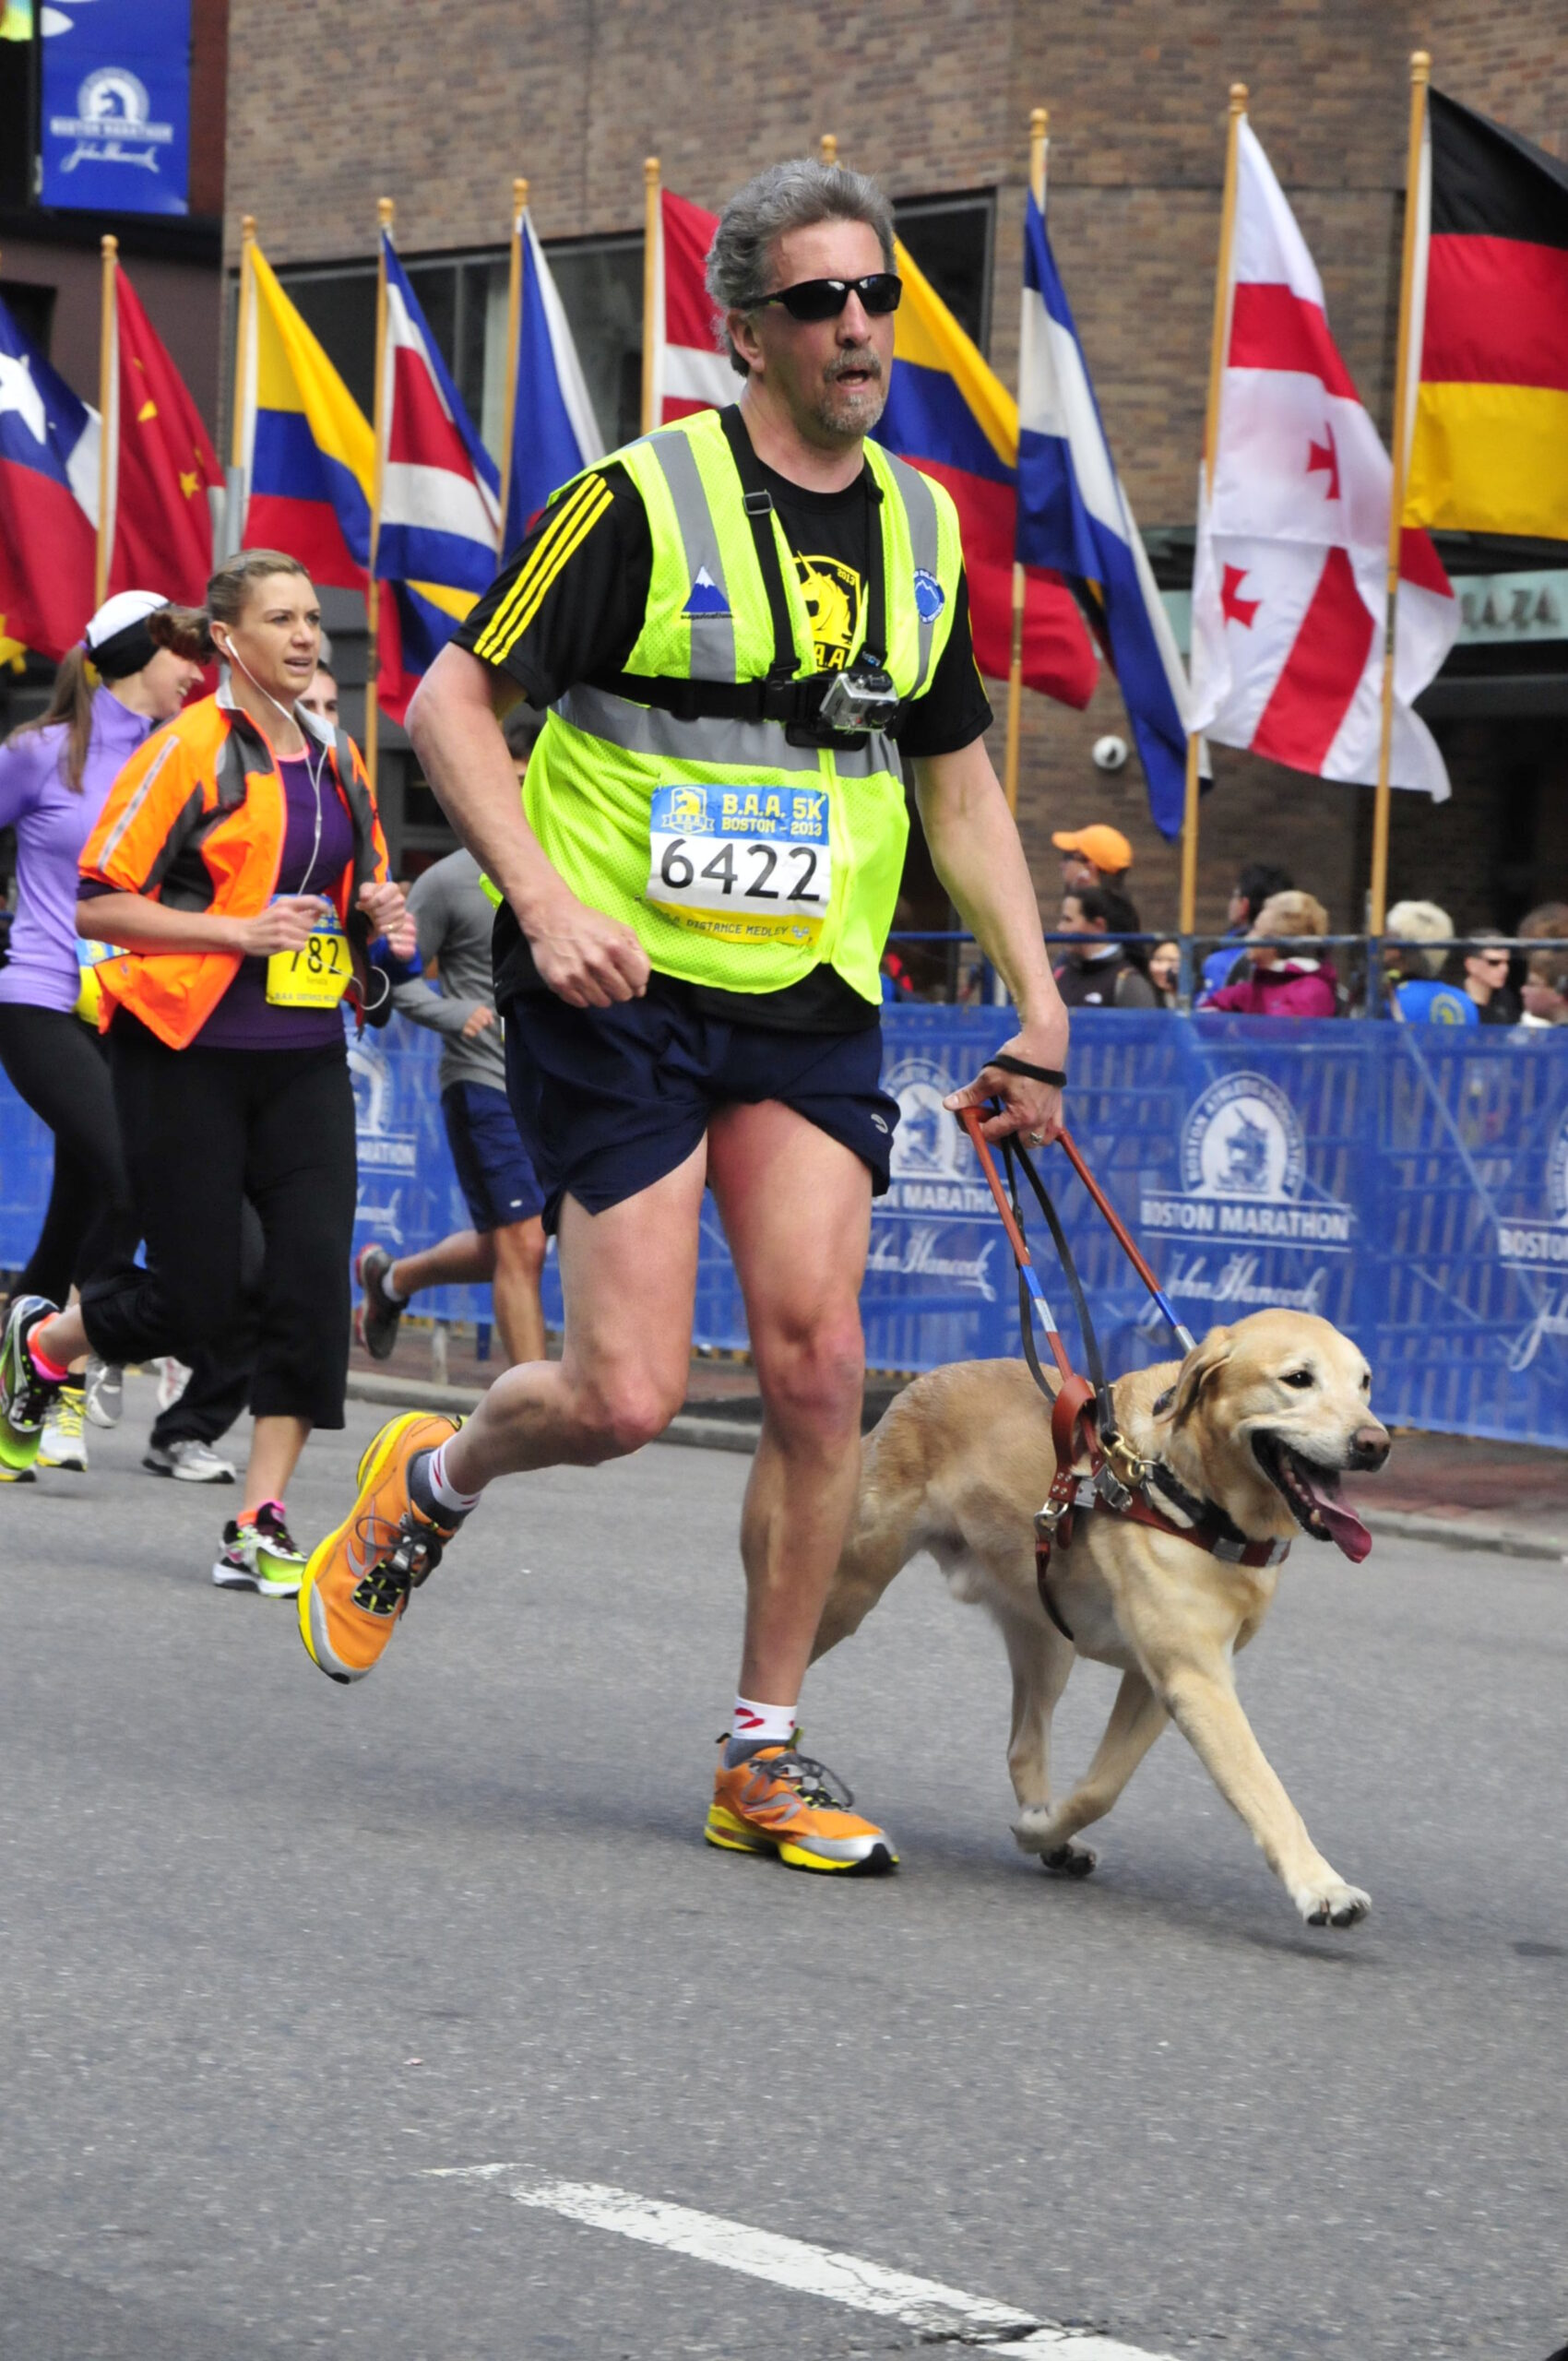 Randy Pierce and the Mighty Quinn at the 2013 BAA 5k Finish!